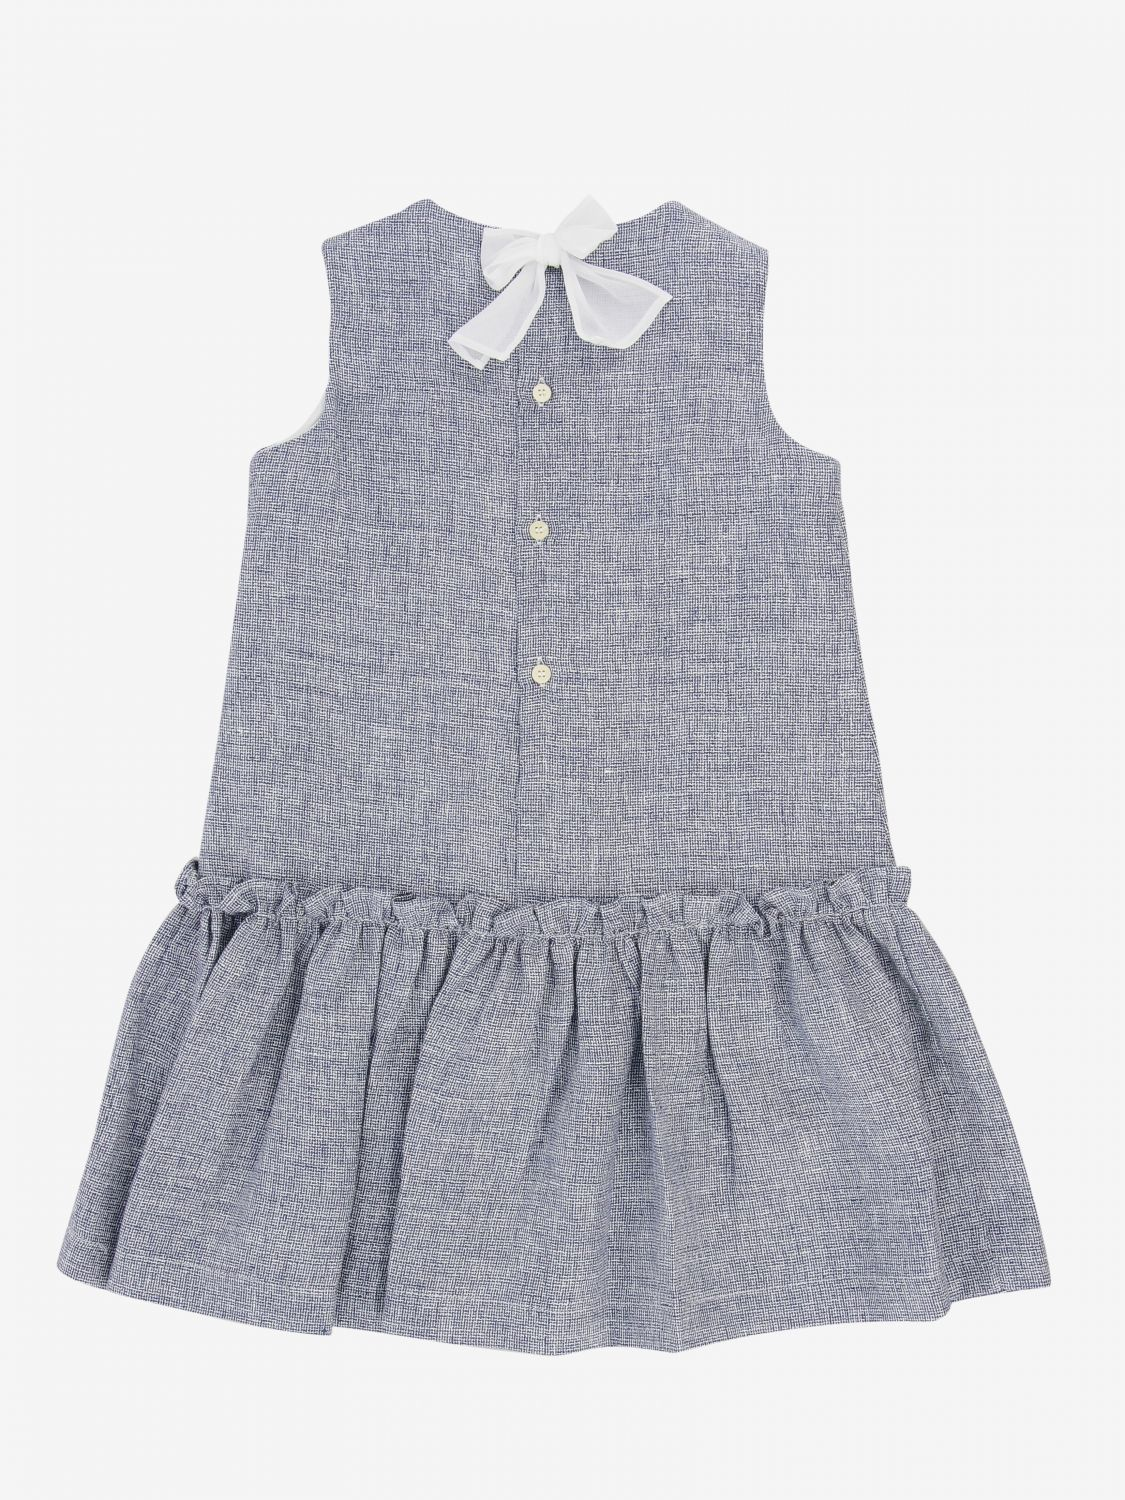 Il Gufo dress in grisaille with bow blue 2